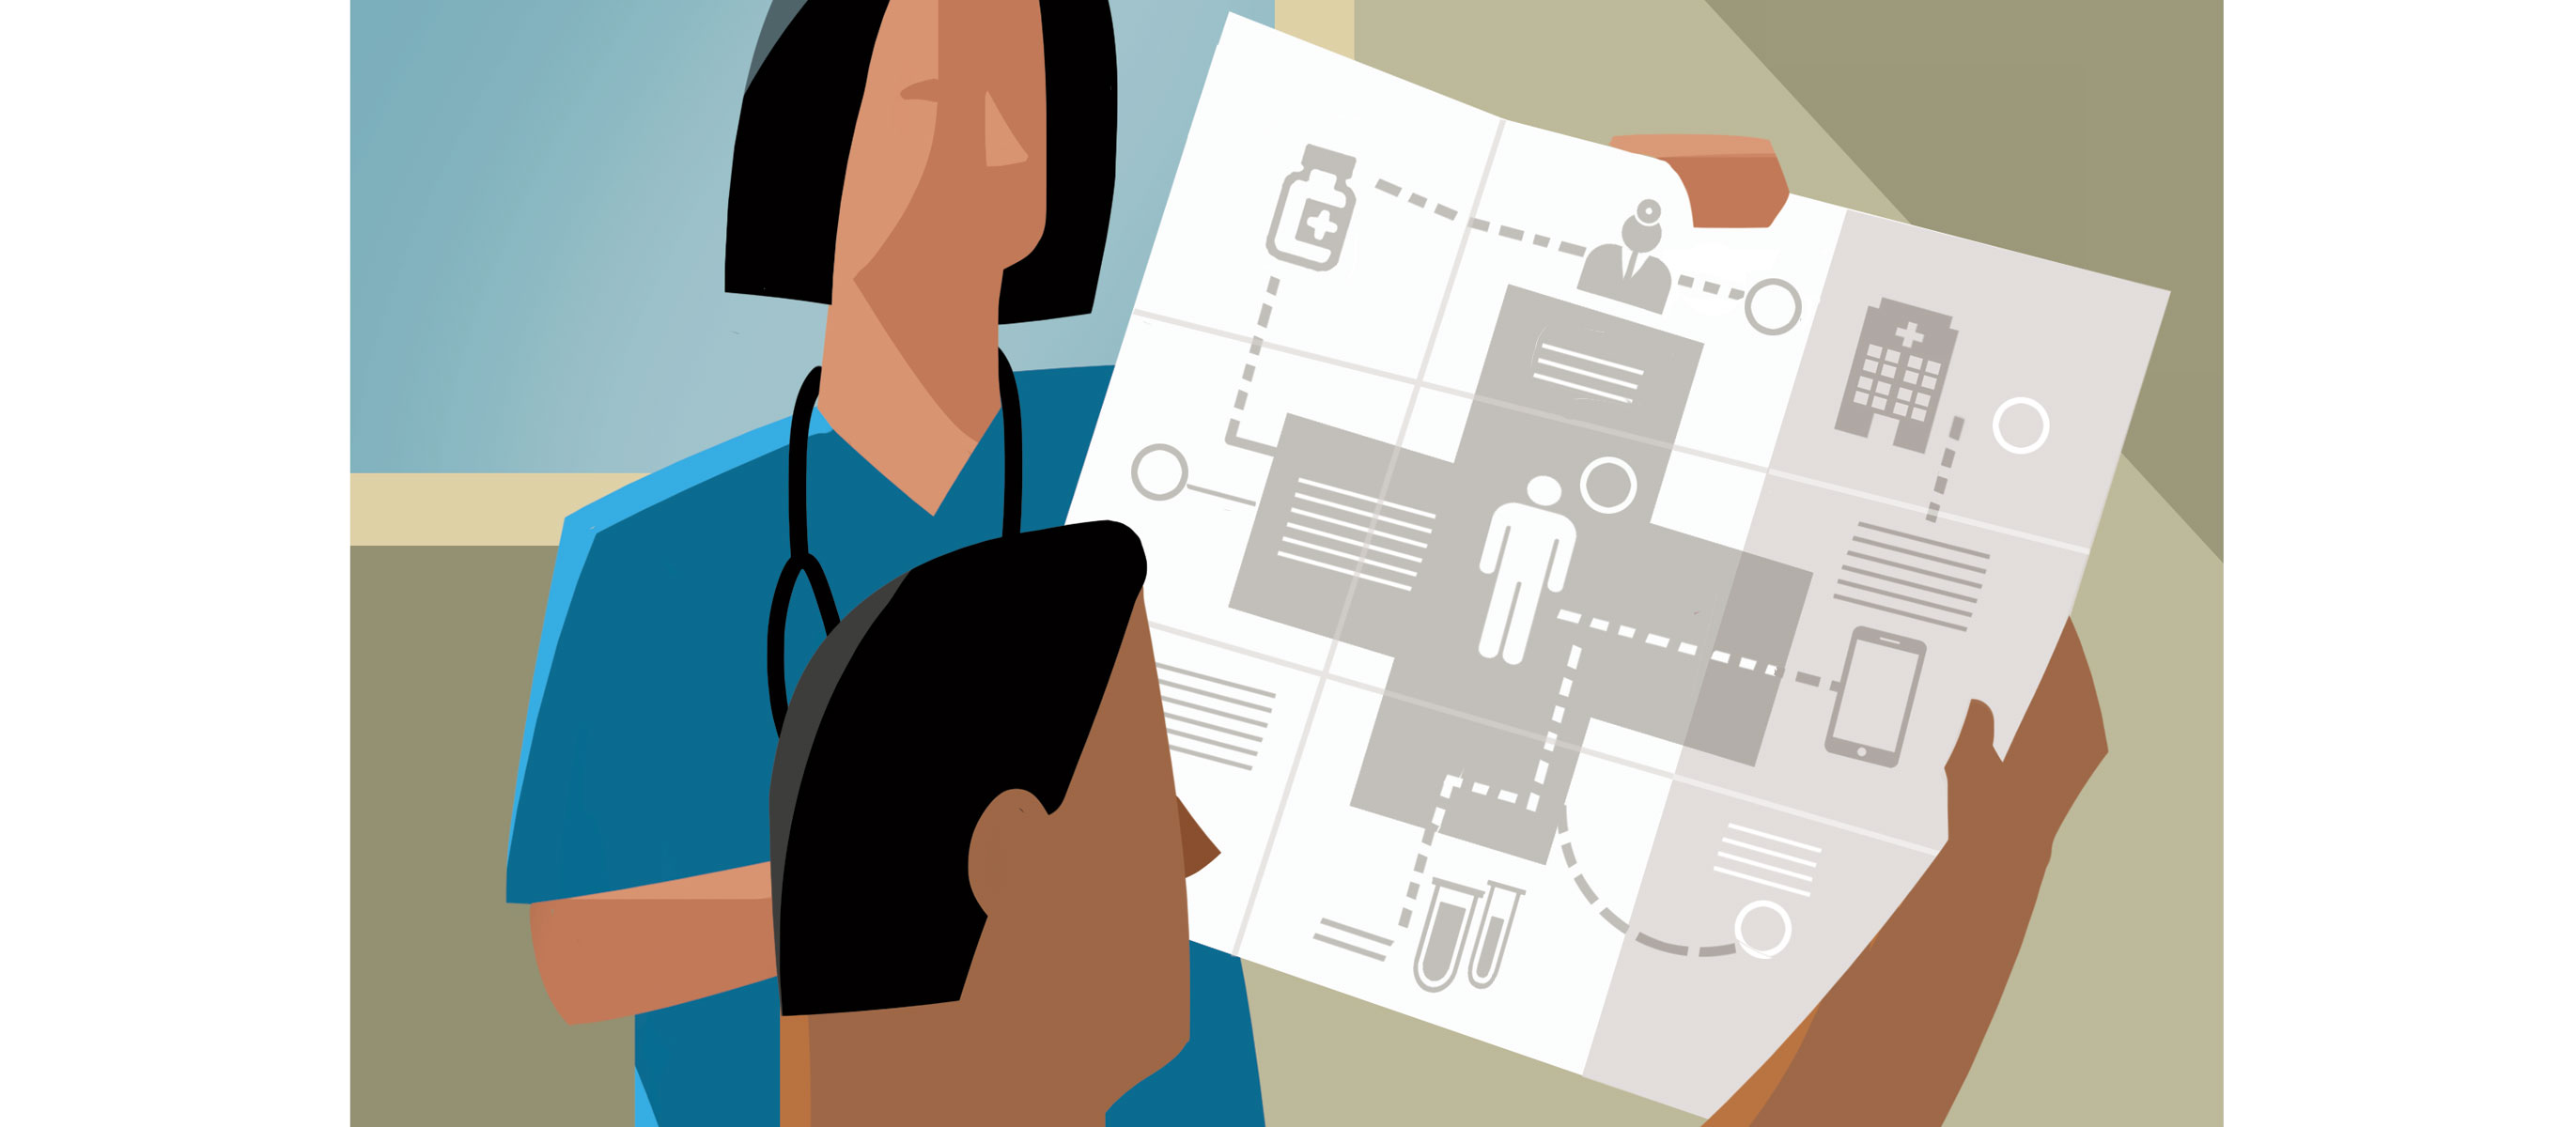 Updated Core Competencies Reflect Evolution of Nurse Navigator Role